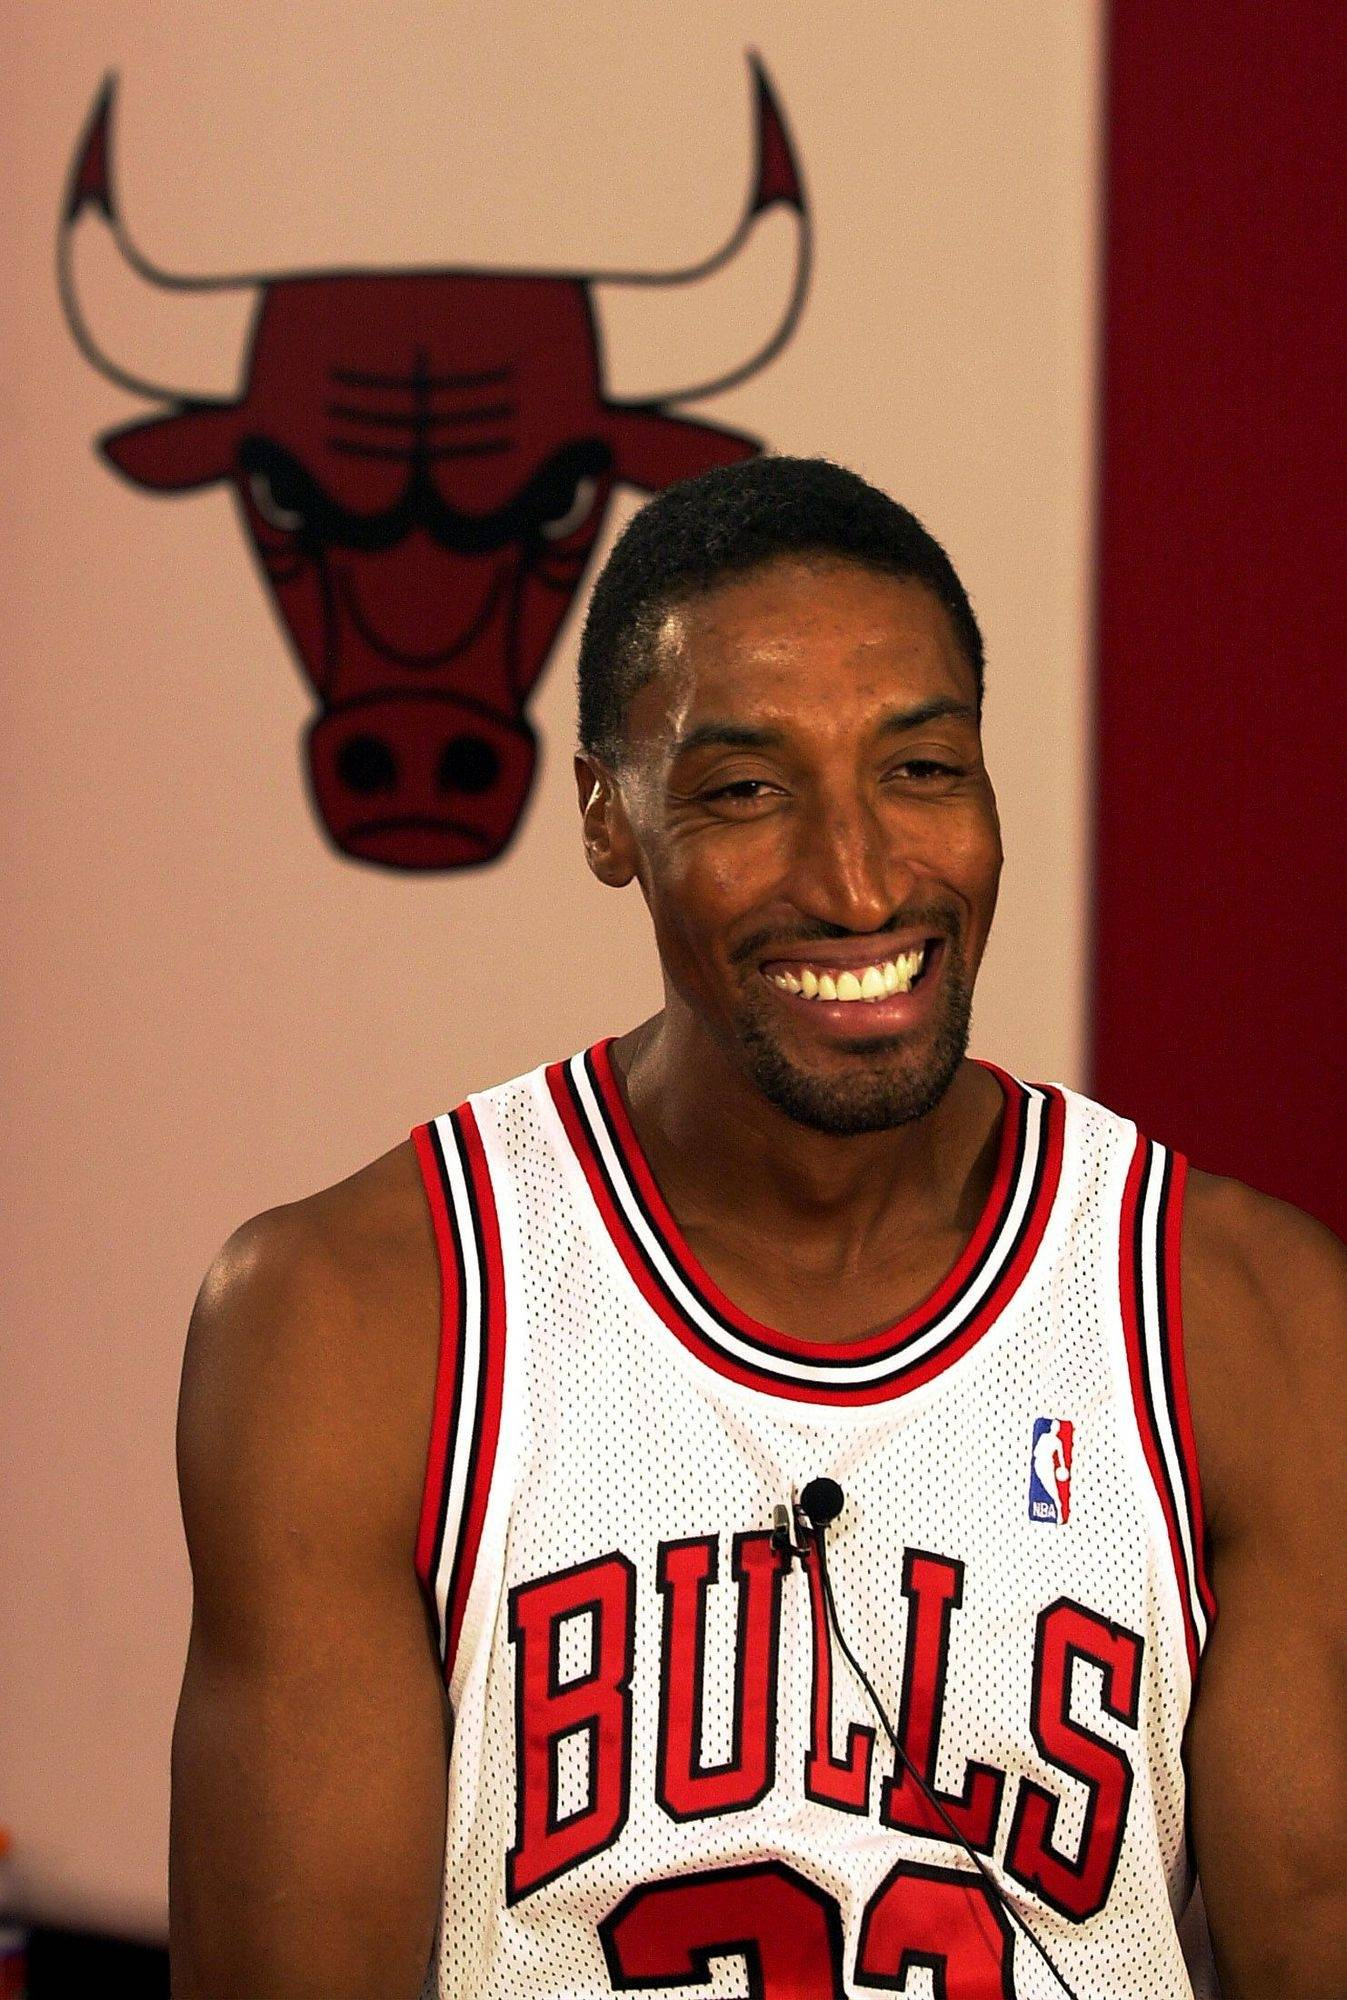 Scottie Pippen returned to the Bulls for the 2003-04 season.